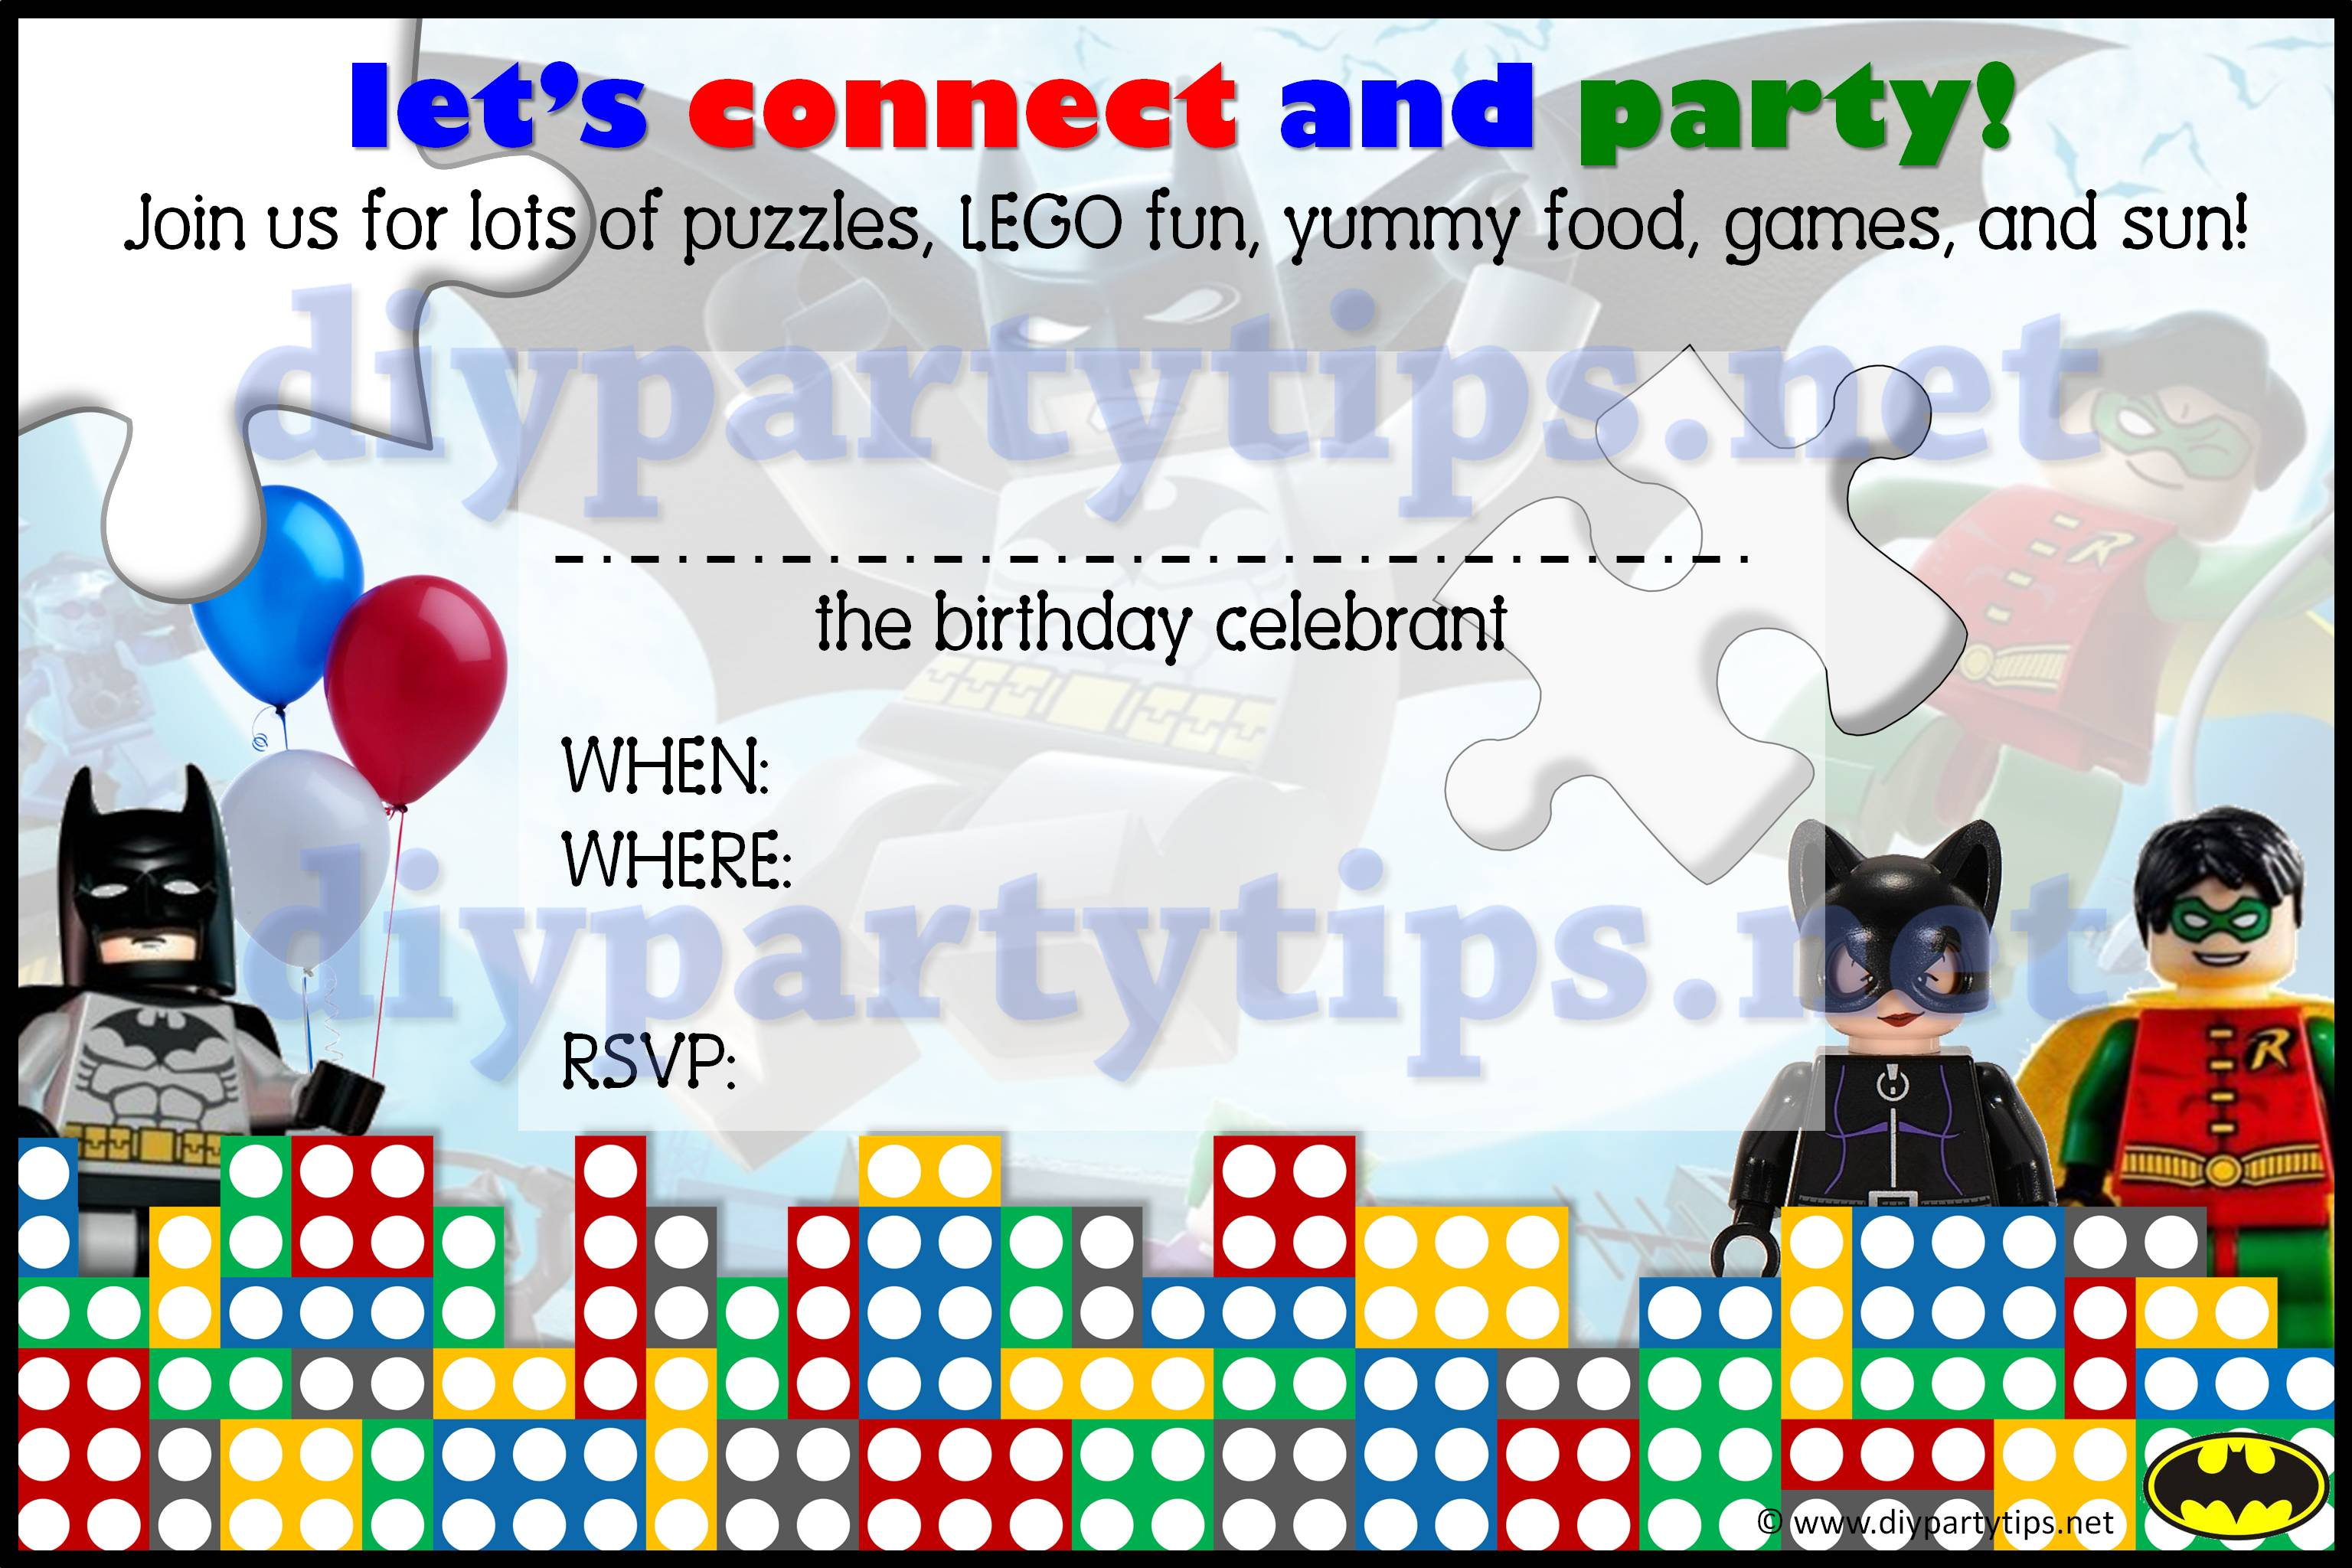 free printable lego birthday invitations ; Lego-Birthday-Invitation-Template-Lolas-DIY-Party-Tips-Watermark